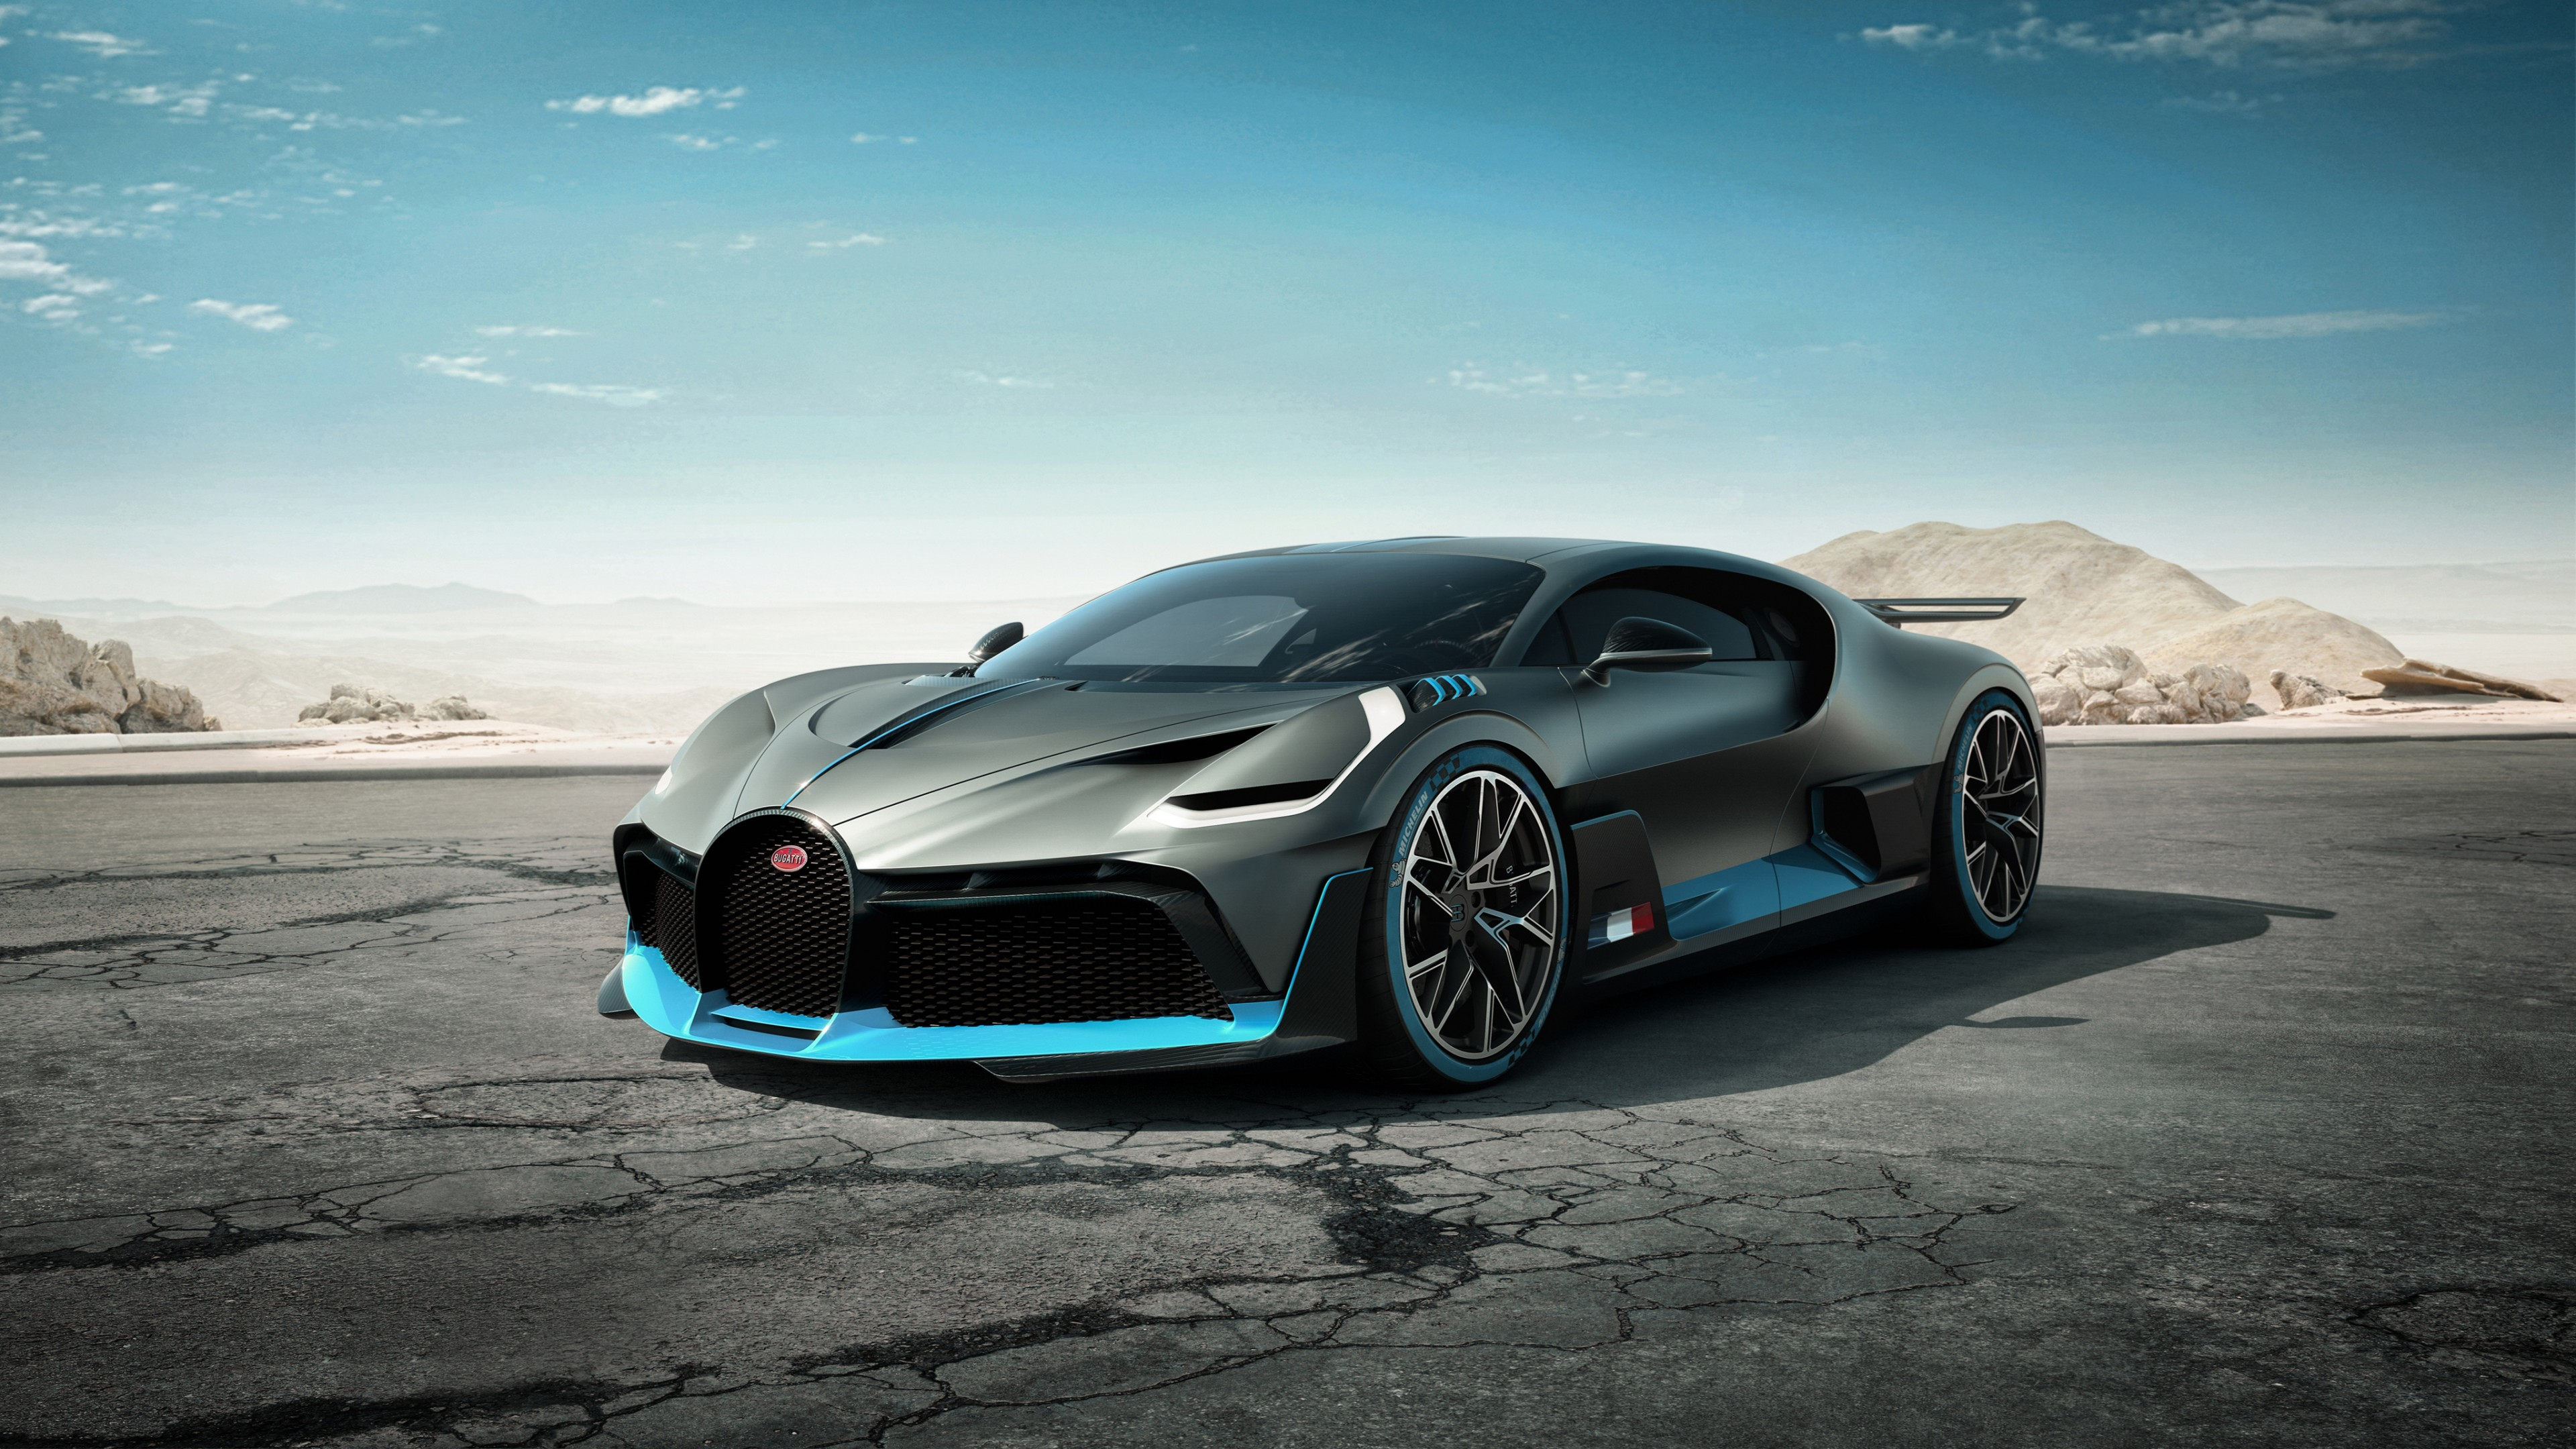 2019 bugatti divo 4k 6 wallpaper hd car wallpapers id - Wallpaper hd 4k car ...